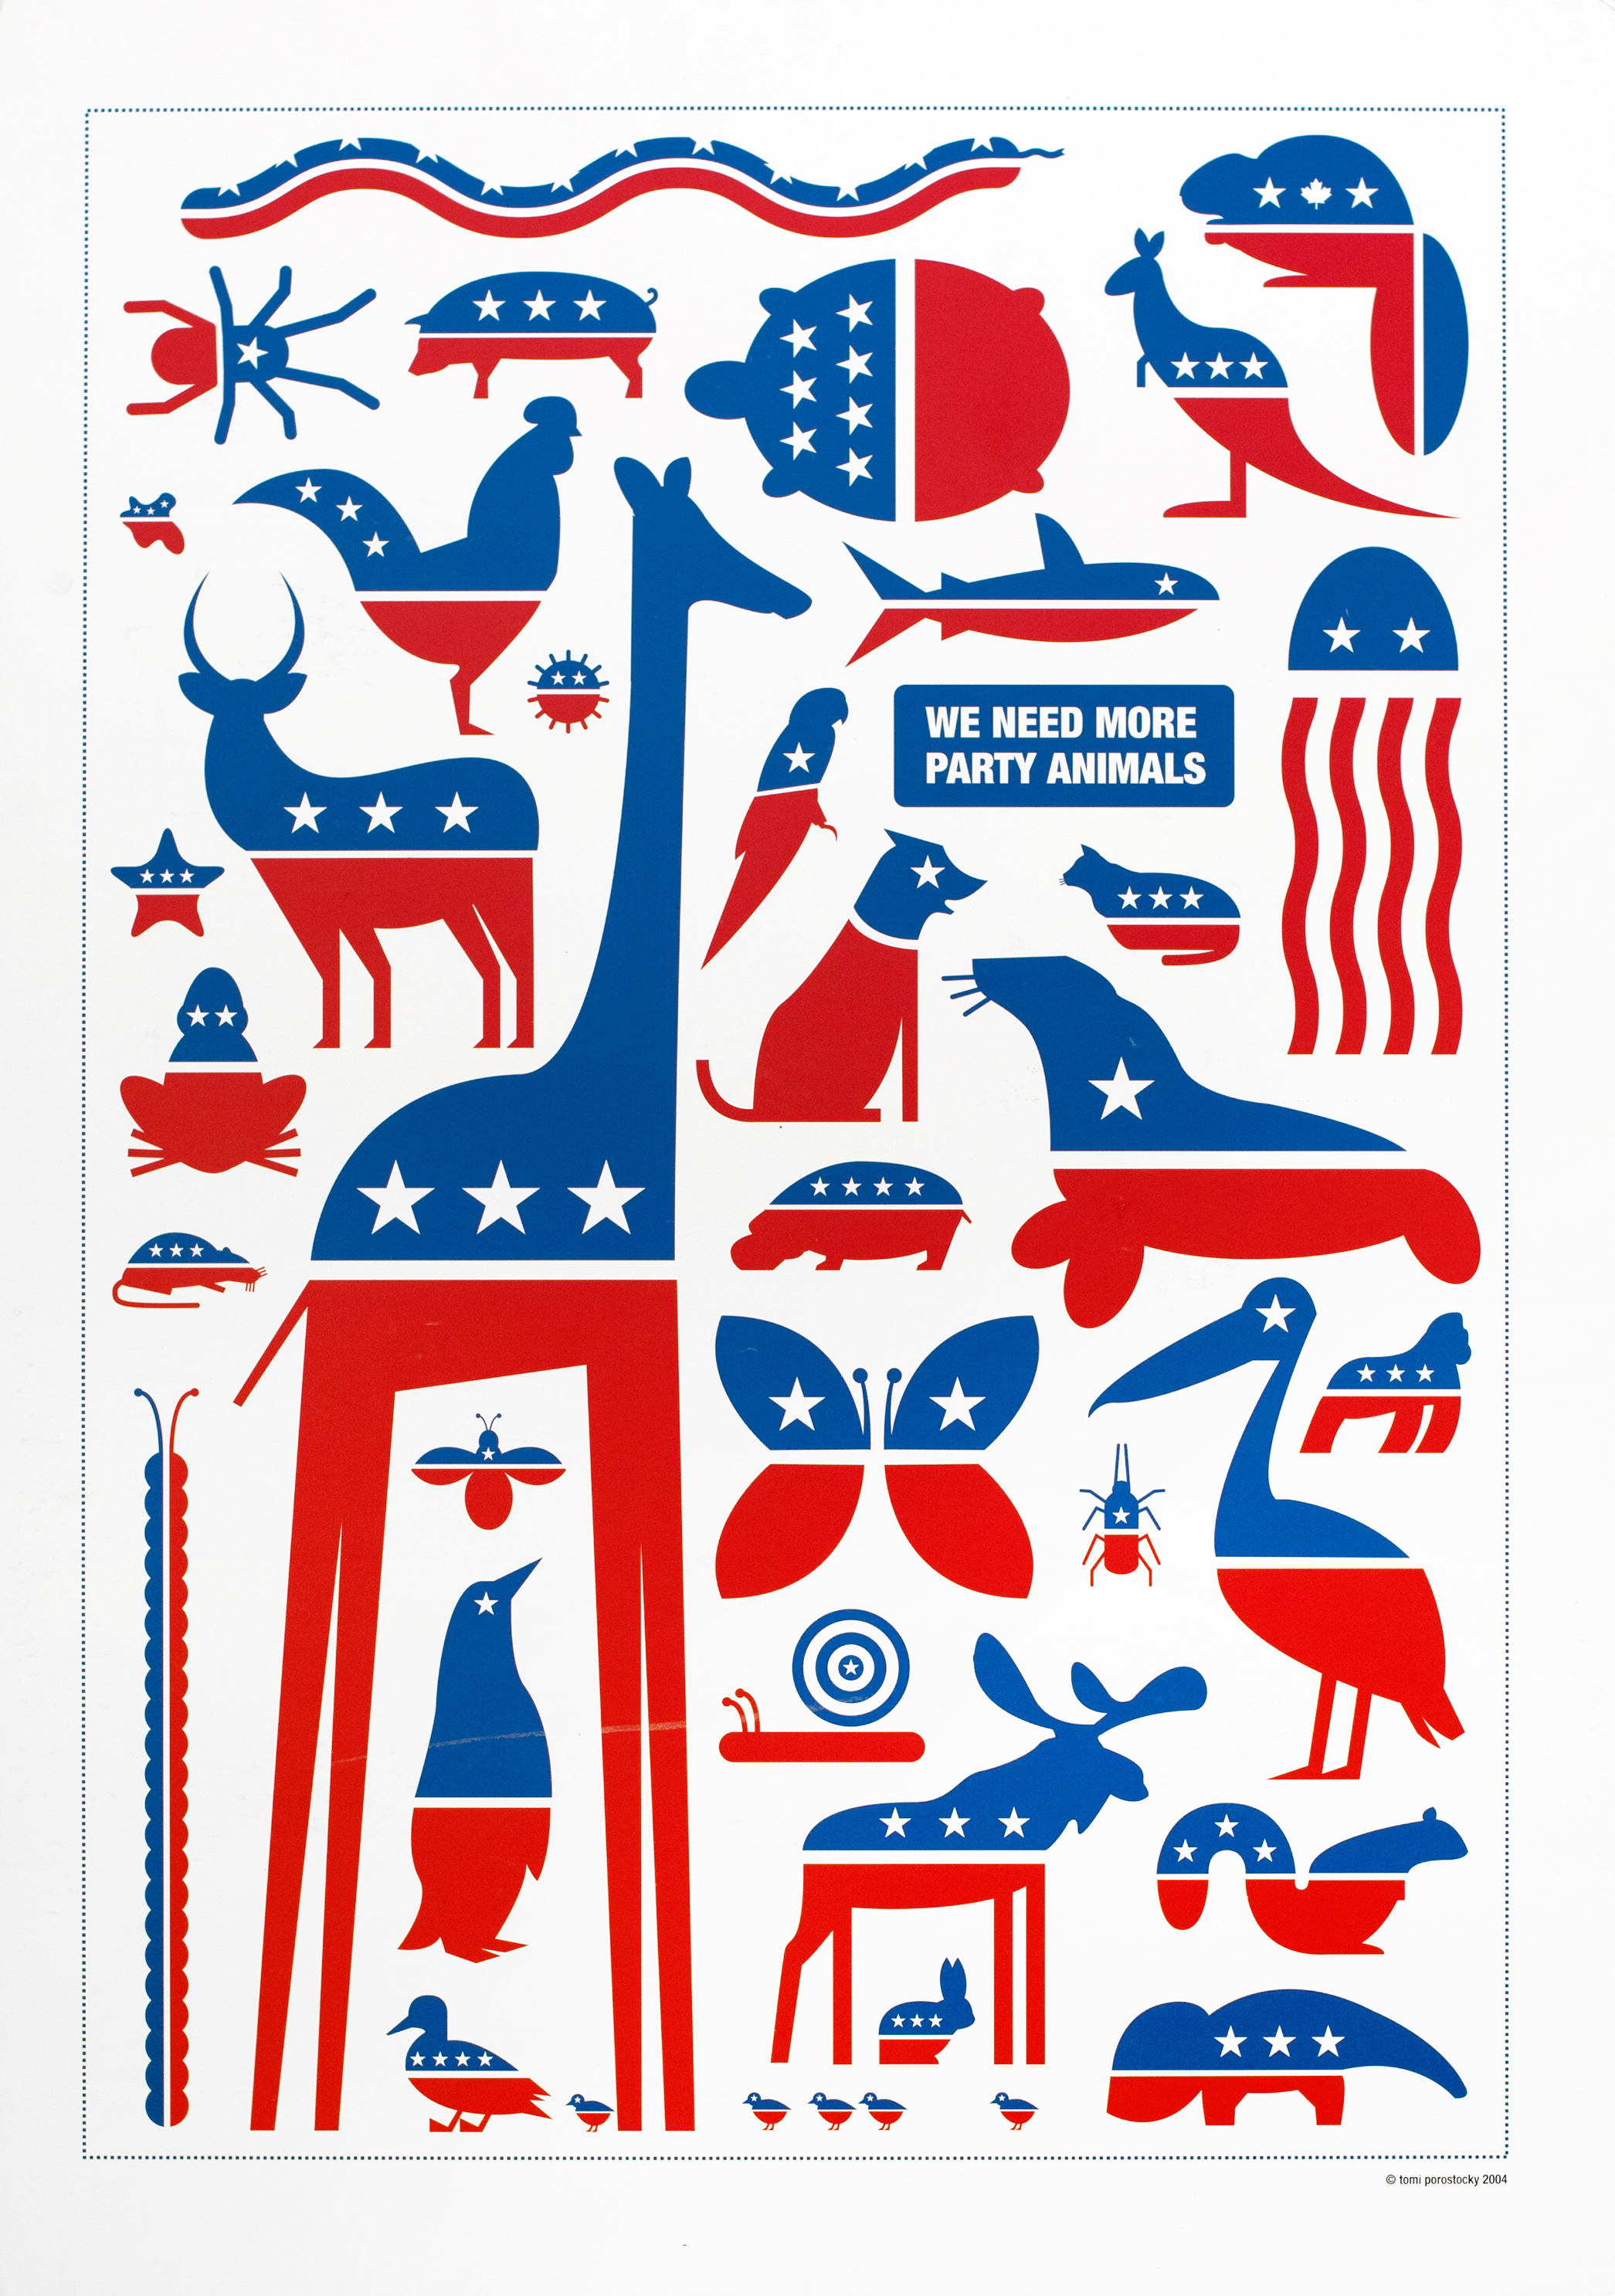 A menagerie of different animals arranged against a white background. All animals are red and blue with white stars, invoking the symbols of the Democratic and Republican parties.